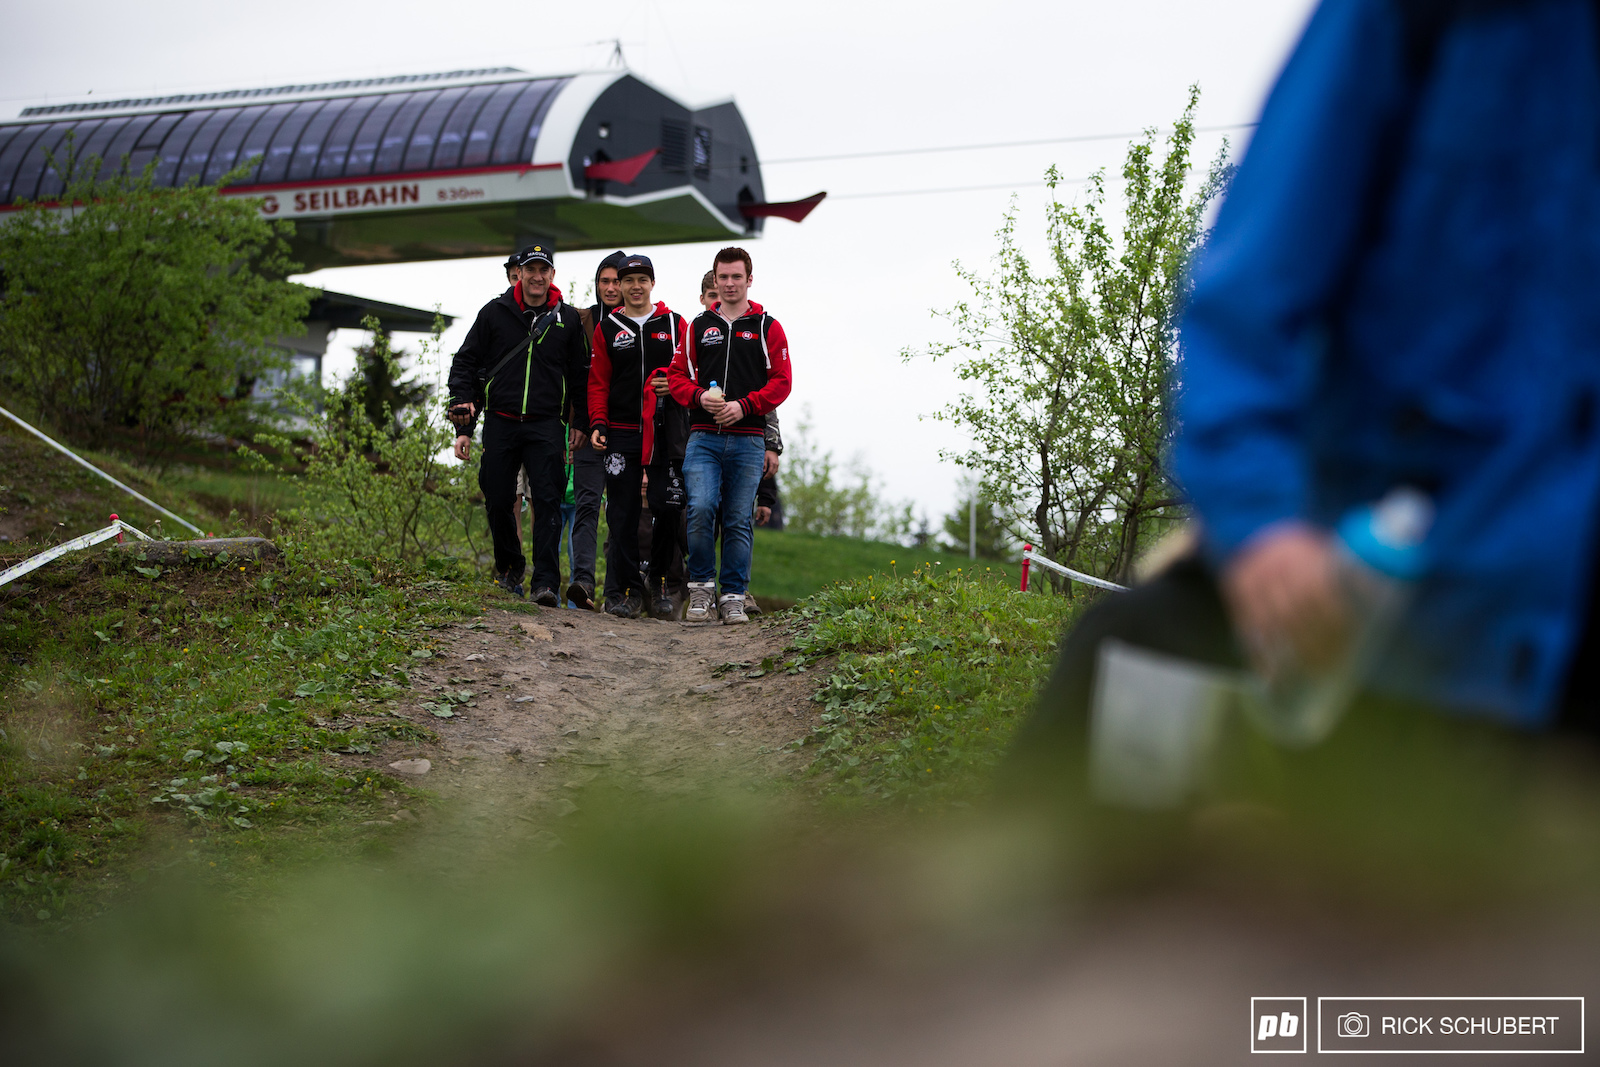 The GZ Racing Team at their collective track walk